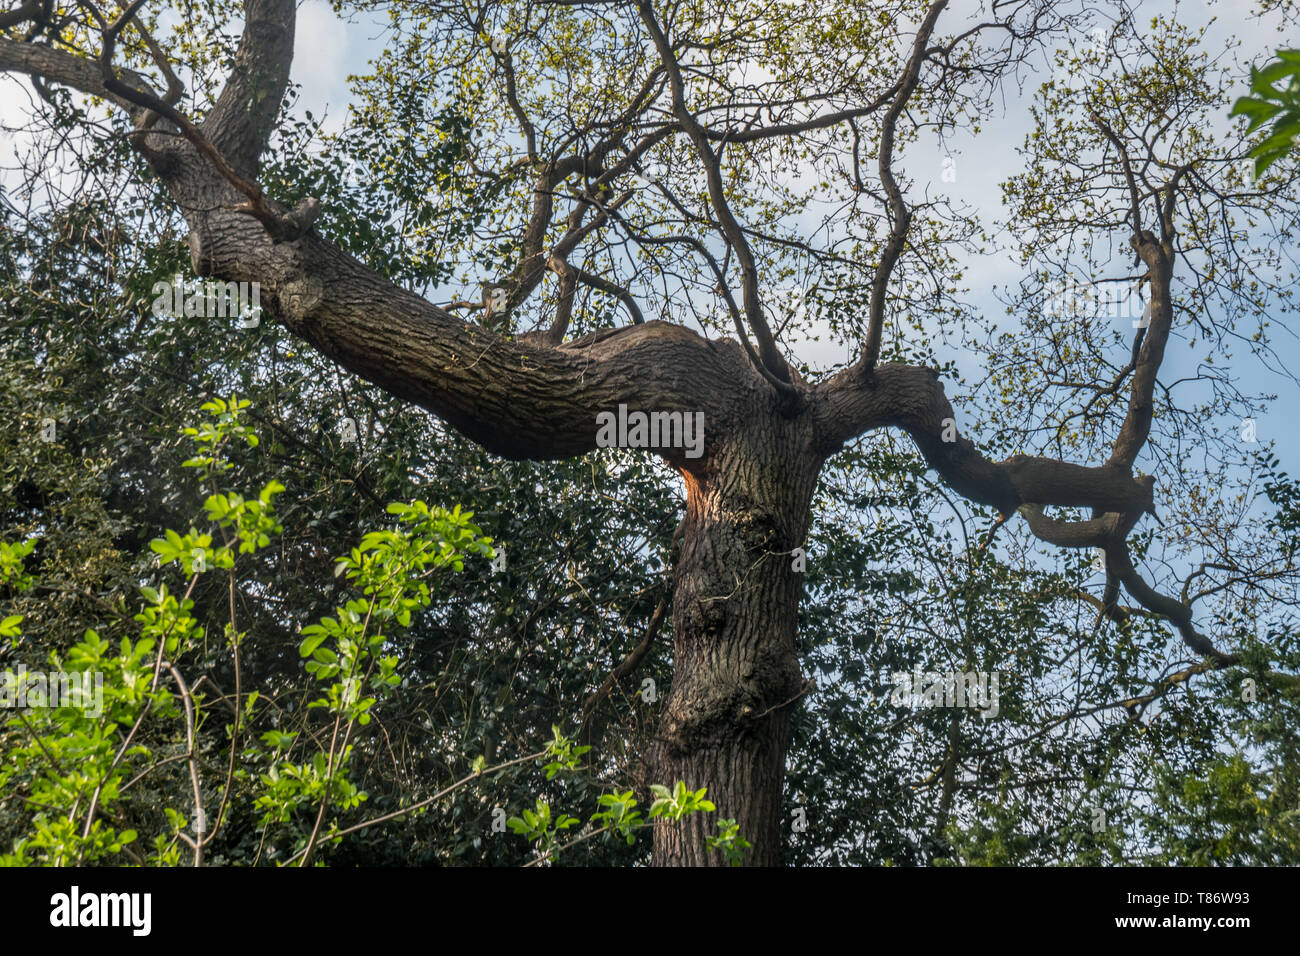 The warm spring sunlight shines through old trees, creating beautiful patterns. Suitable for making through the background. - Stock Image